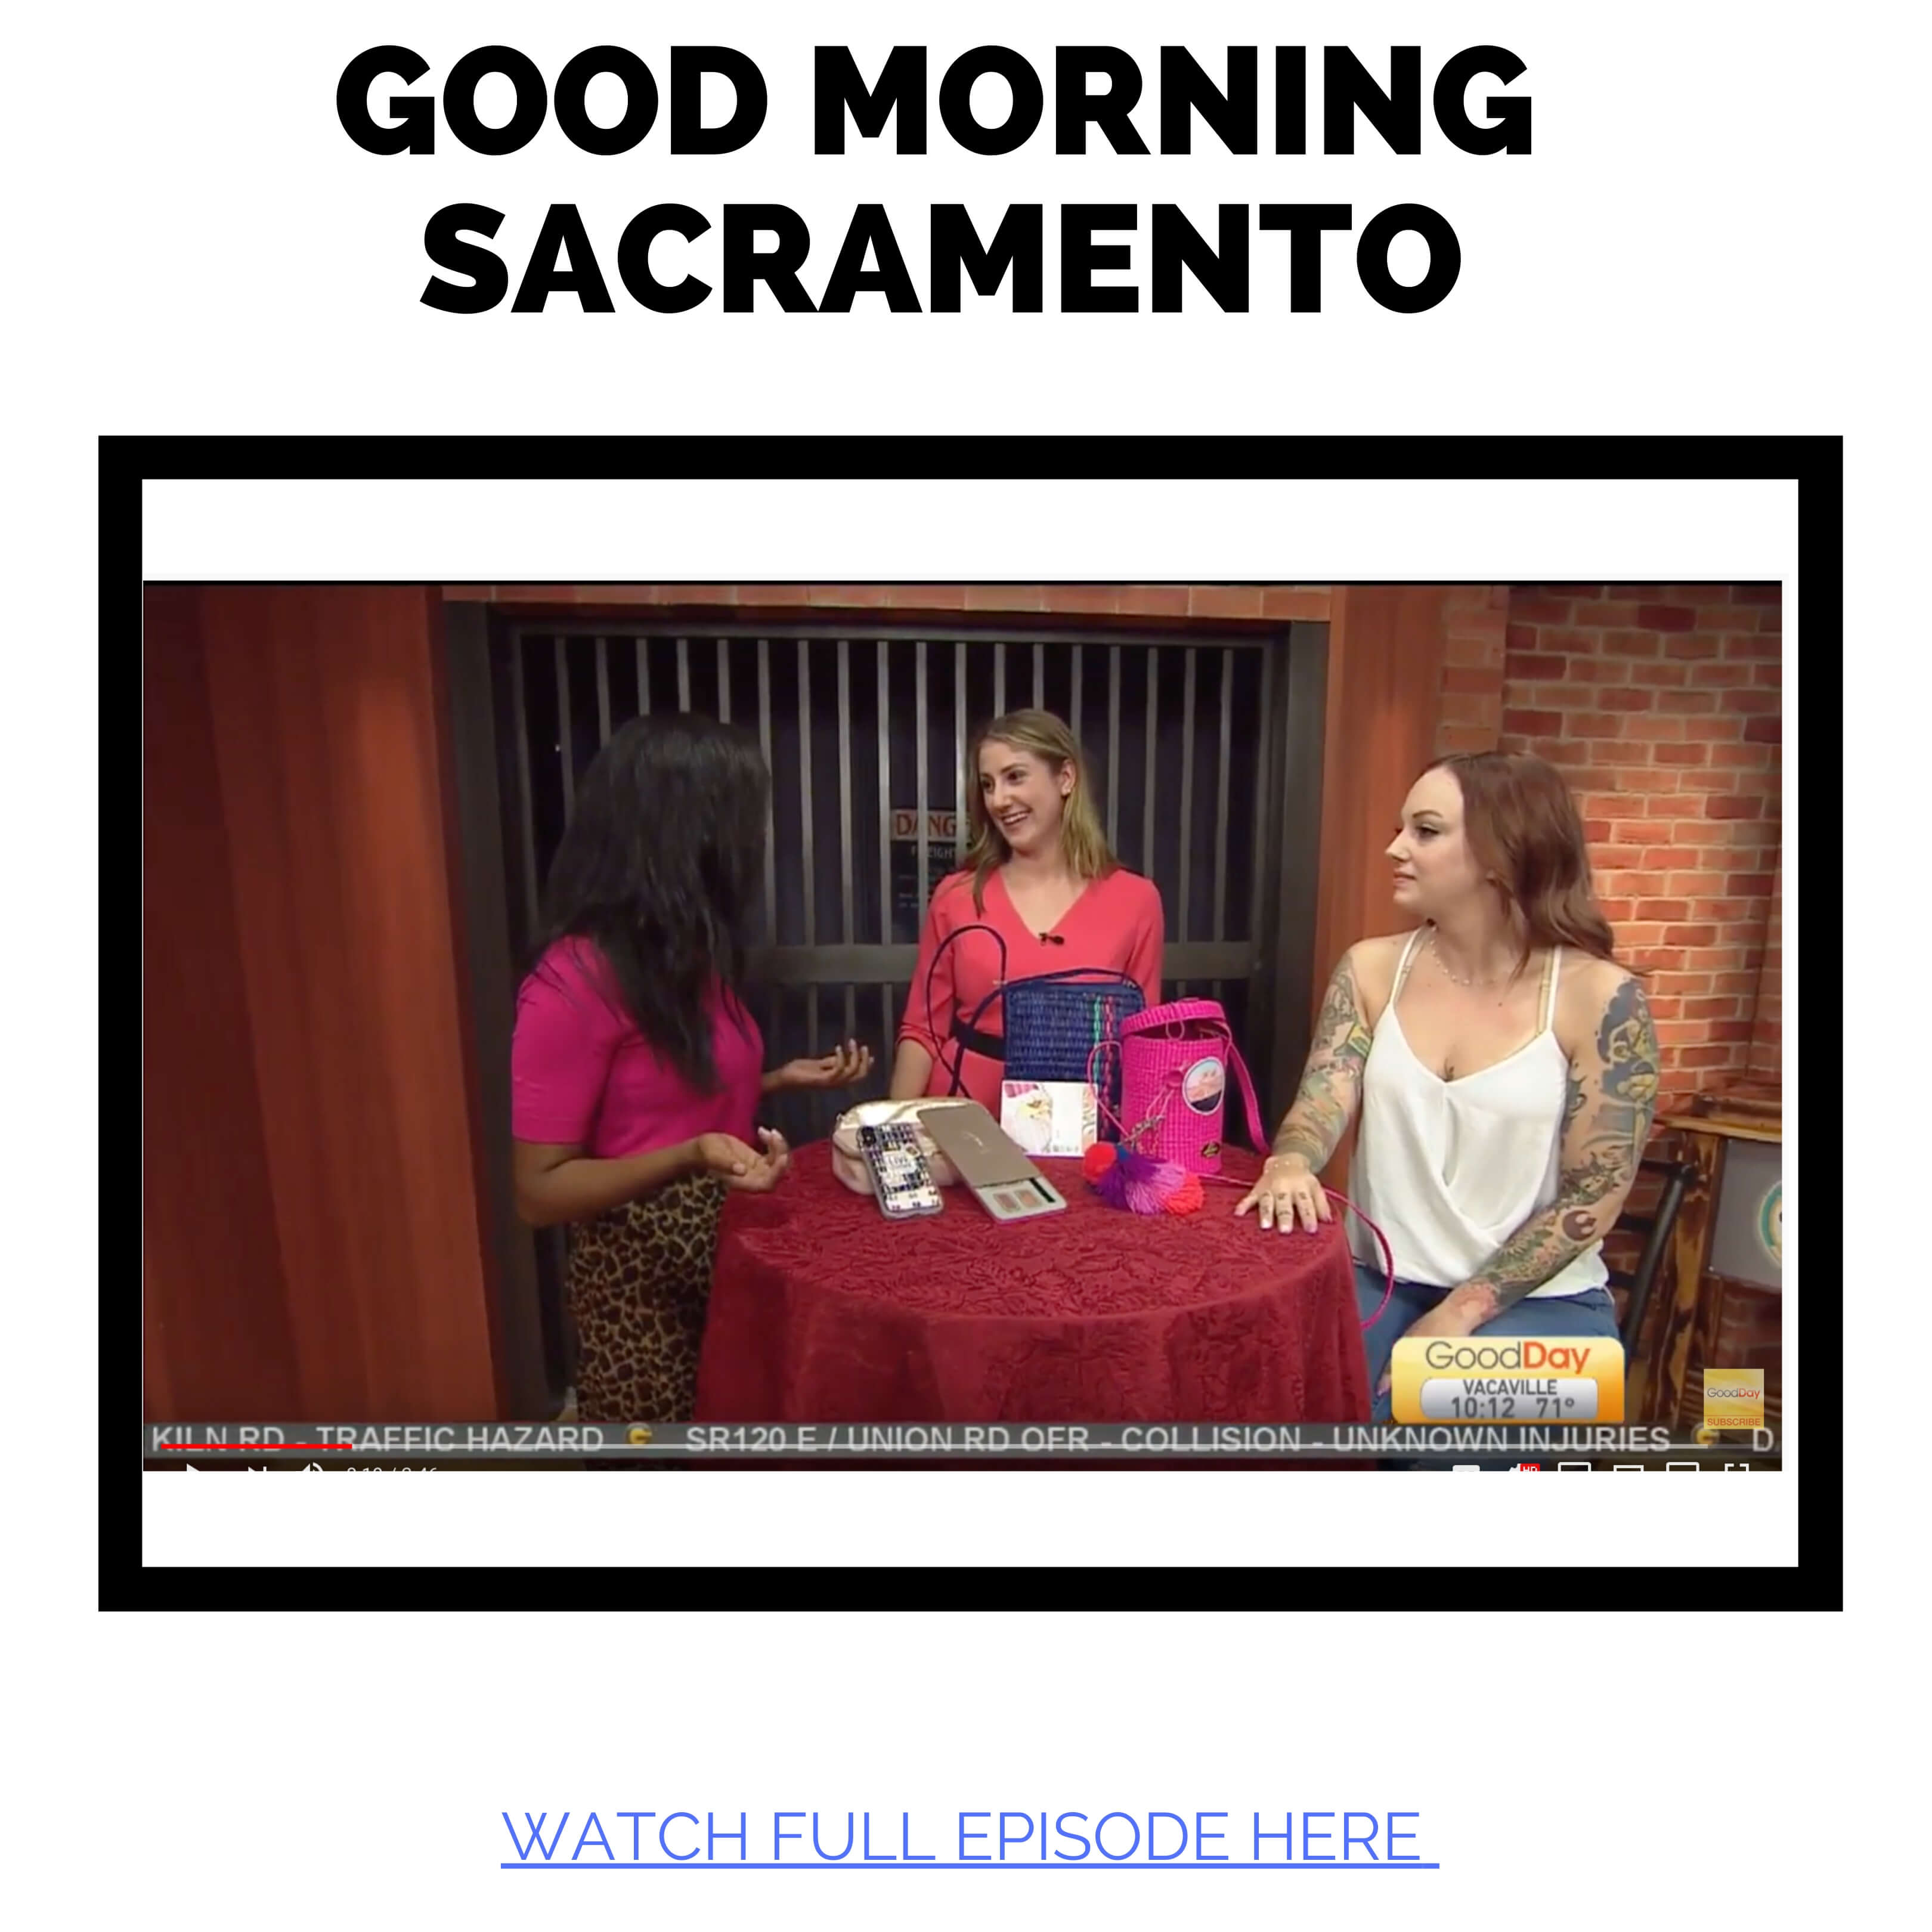 JAC featured in Good Morning Sacramento